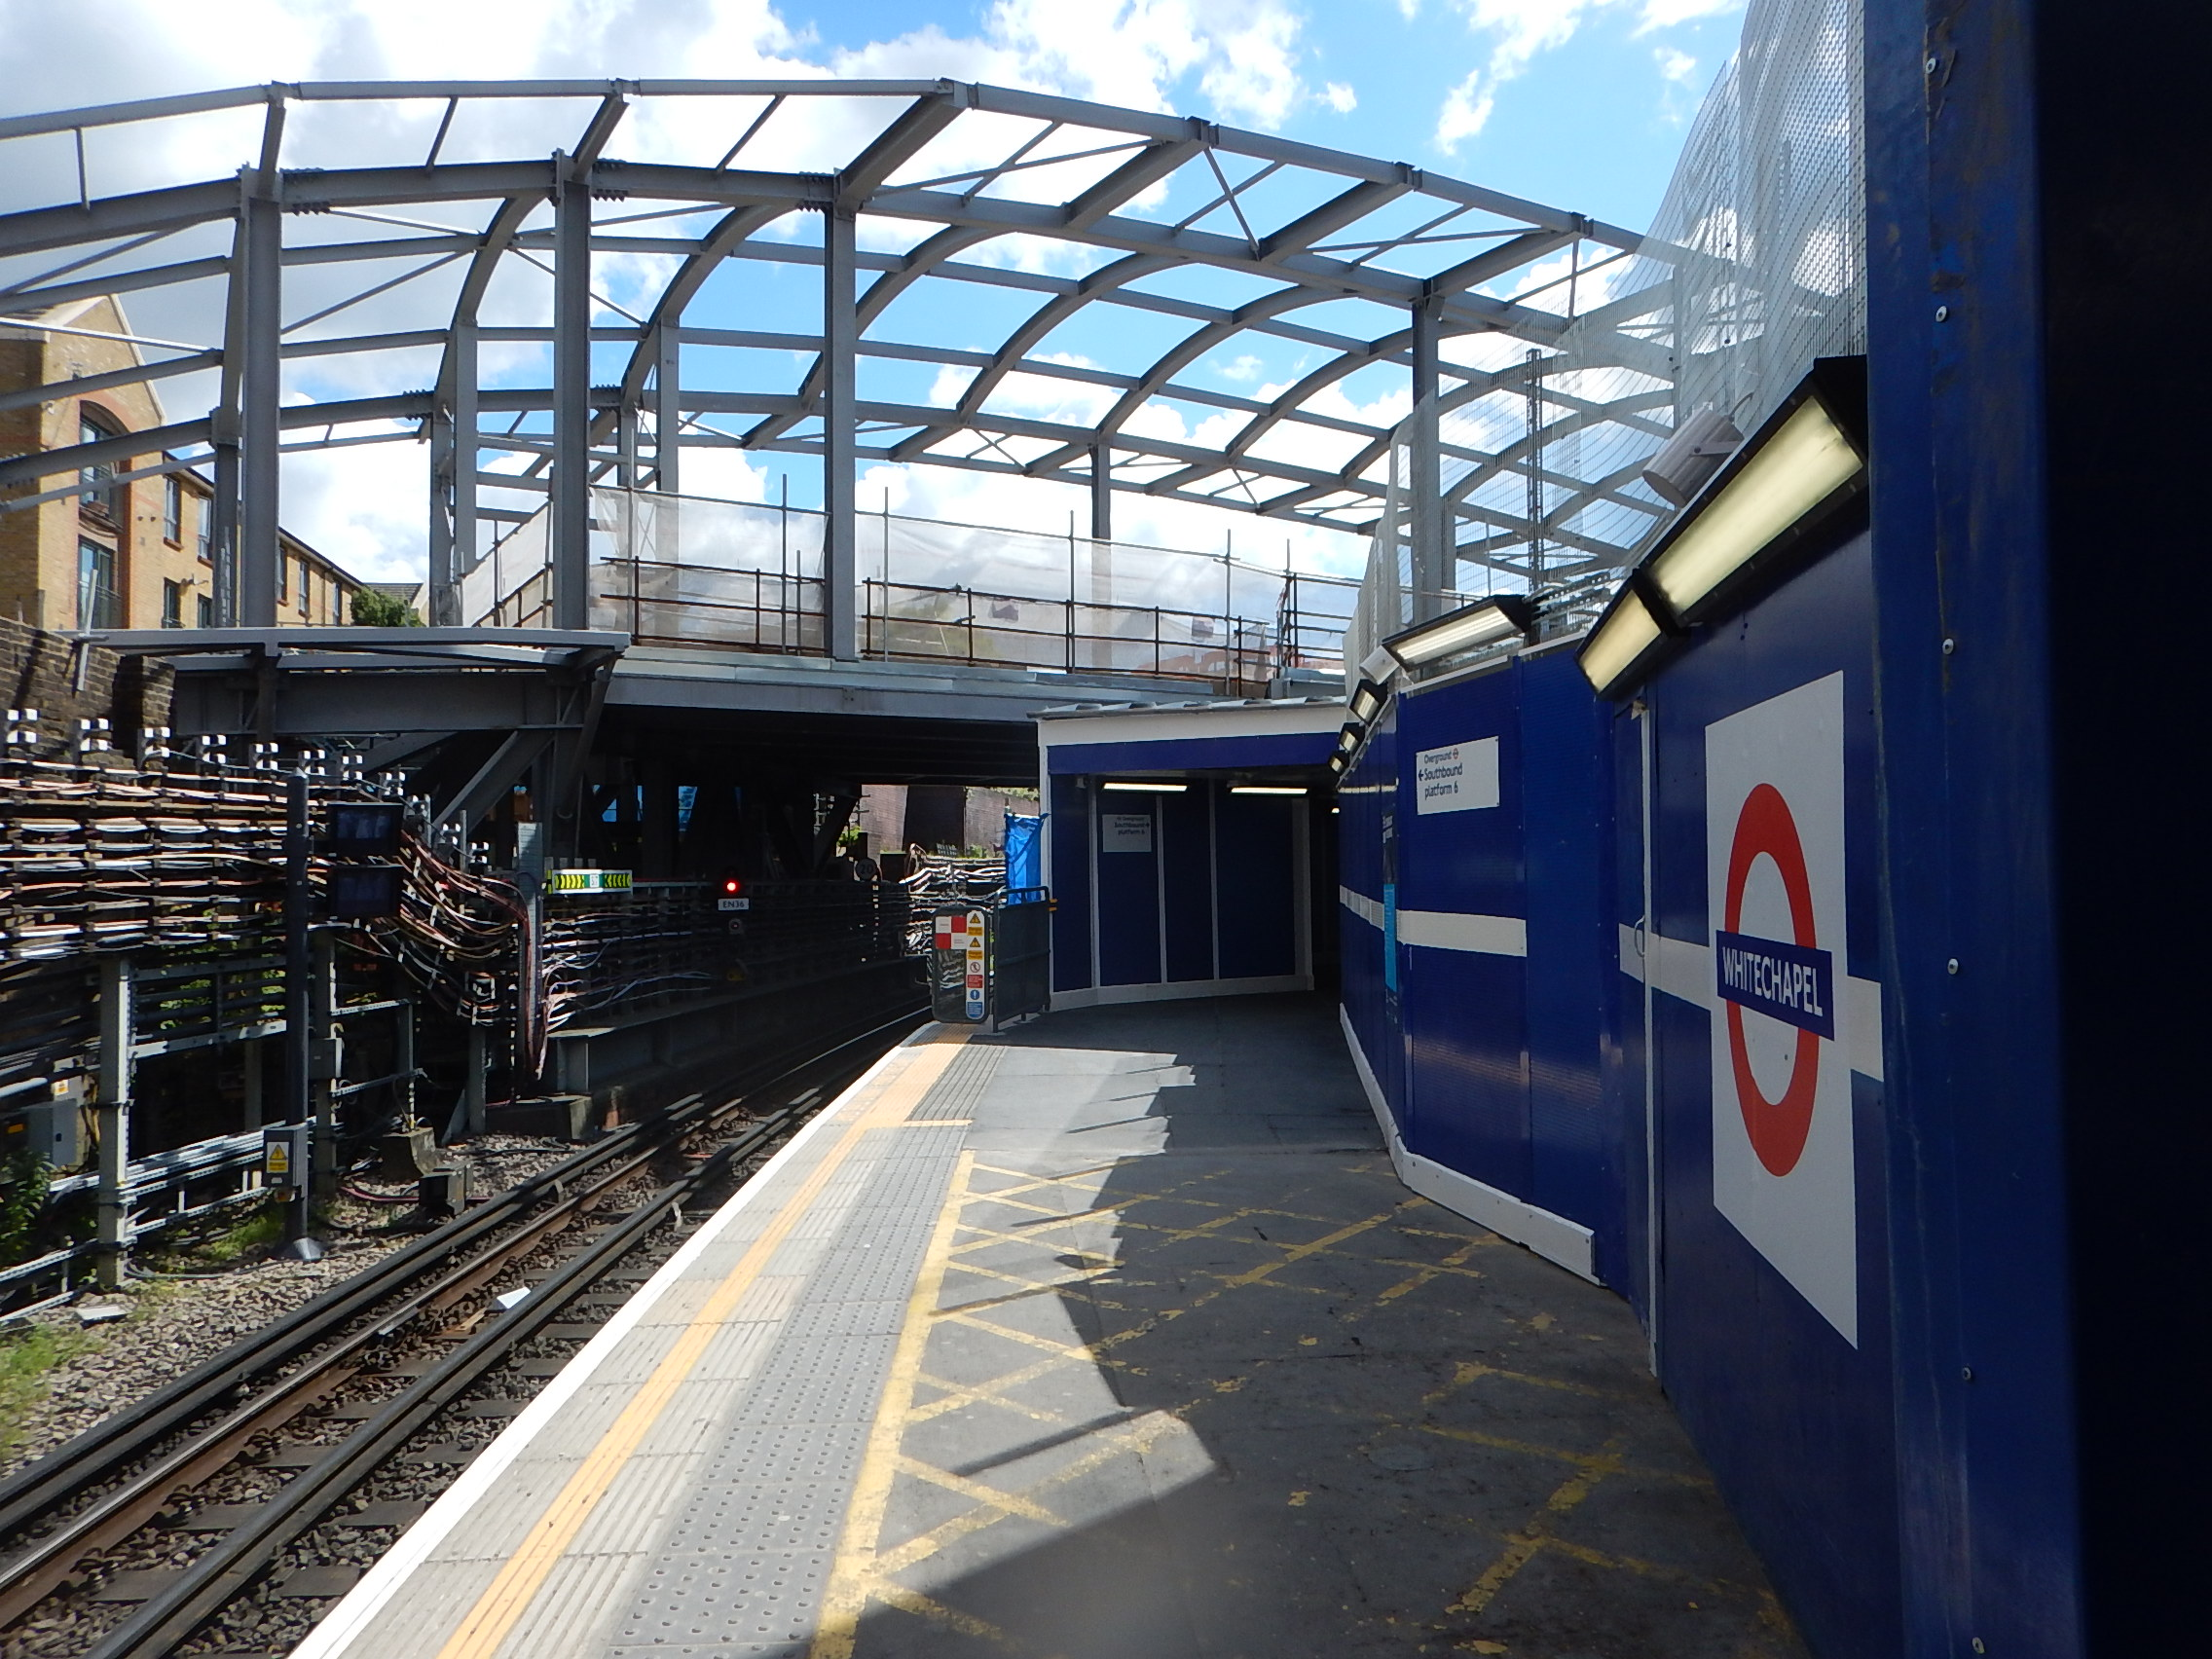 The Frame Of The New Roof At Whitechapel Station Takes